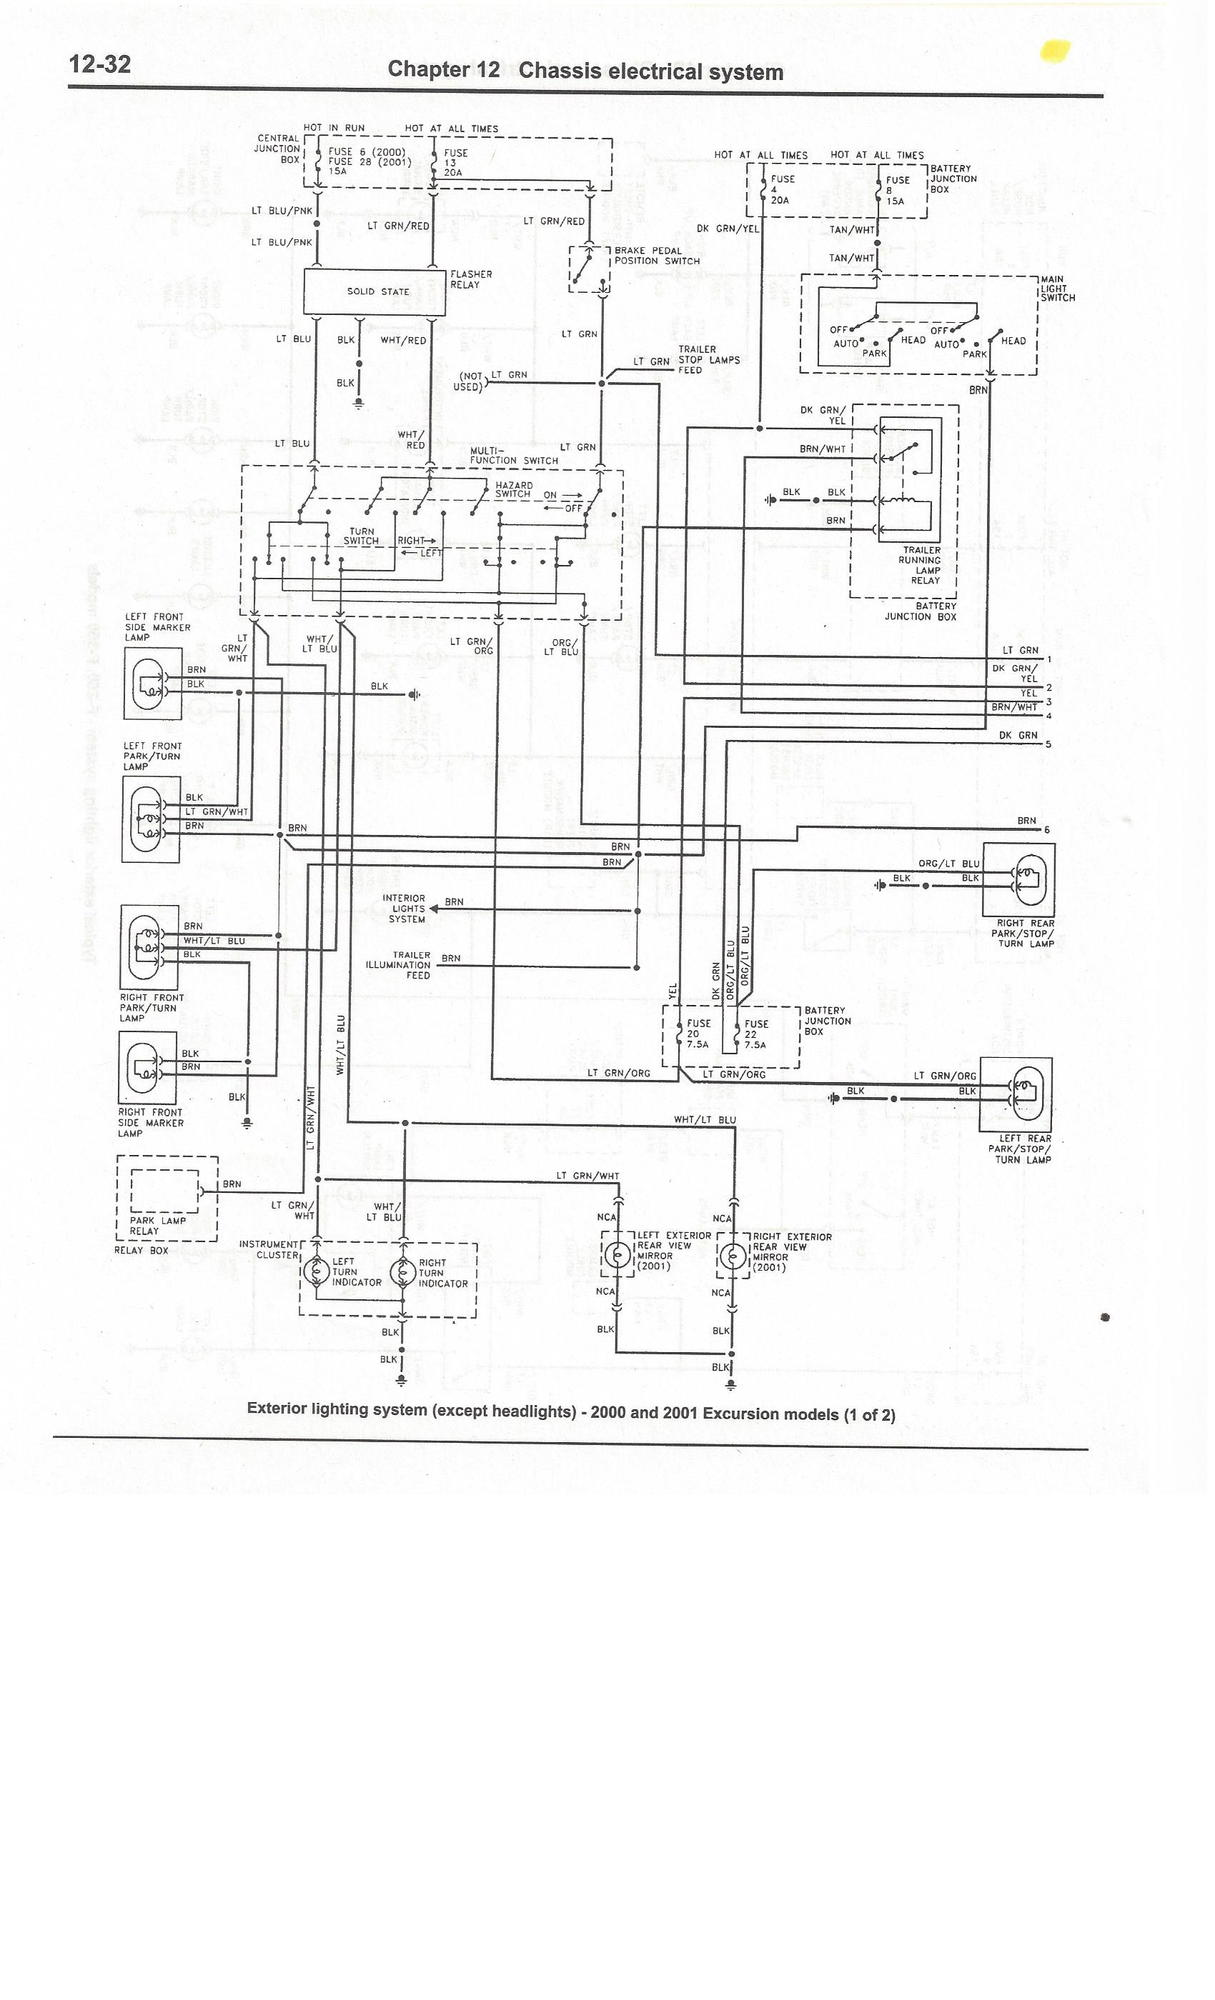 Complete Excursion Wiring Diagrams So Far Ford Truck 1997 Expedition Xlt Diagram4wdtrailer Light Plug Exterior Lighting System Exc Headlights 00 01 Br 1 Of 2